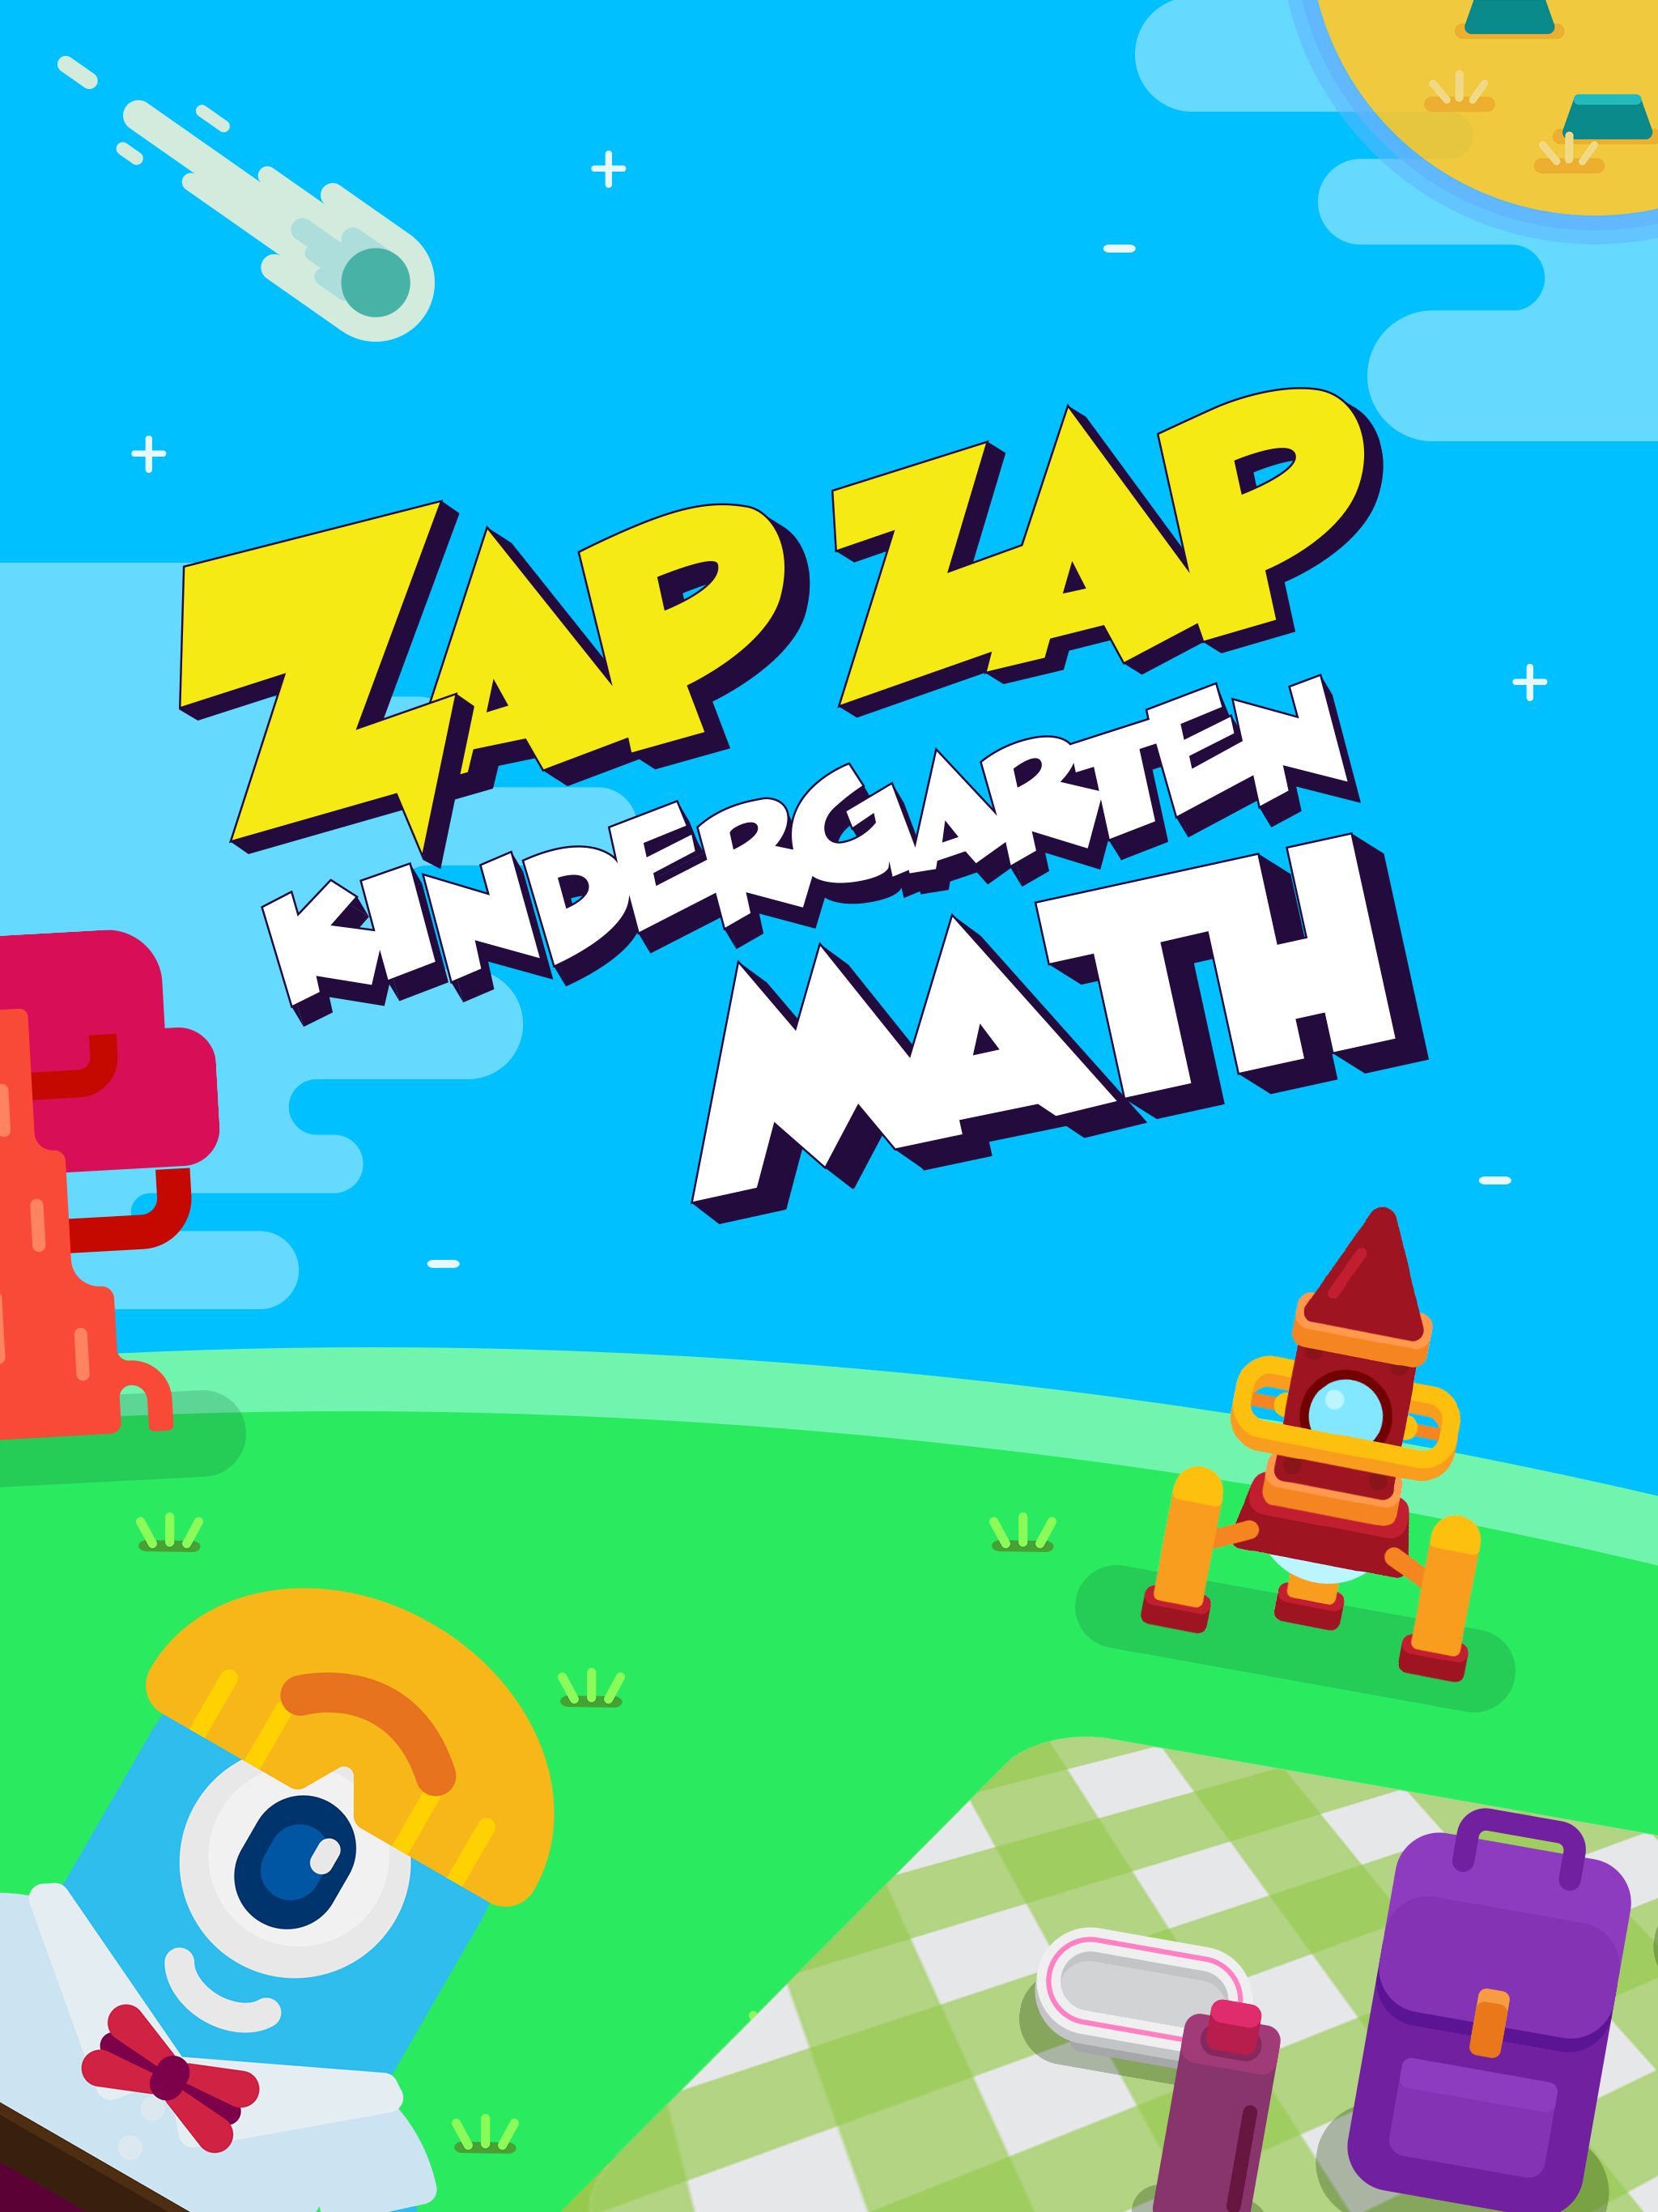 #ZapZap #ZapZapMath #App #technology #ad